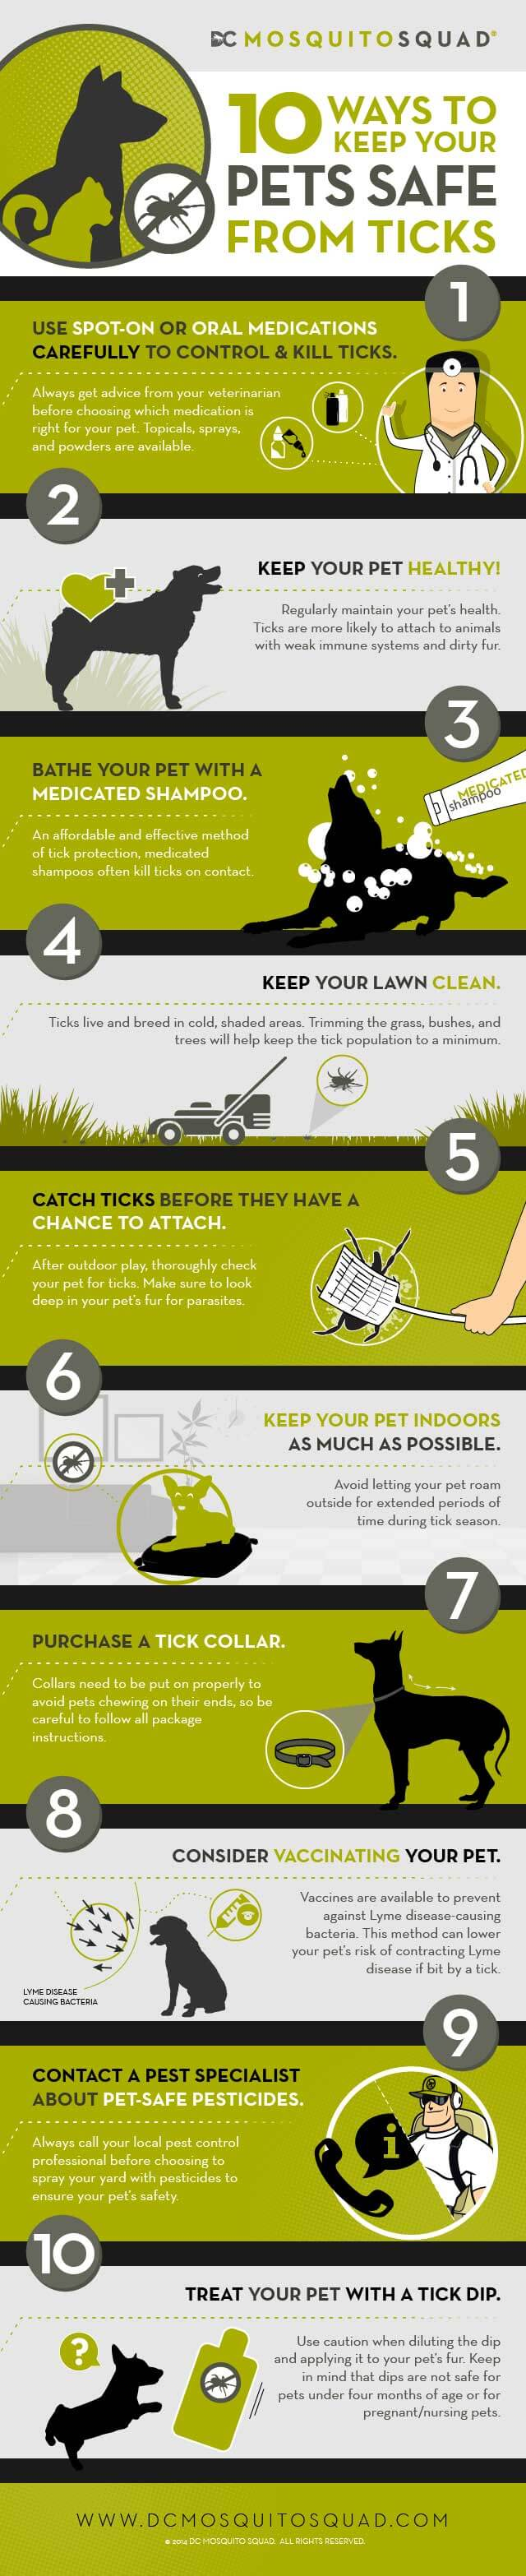 Infographic detailing how to protect pets from pests.